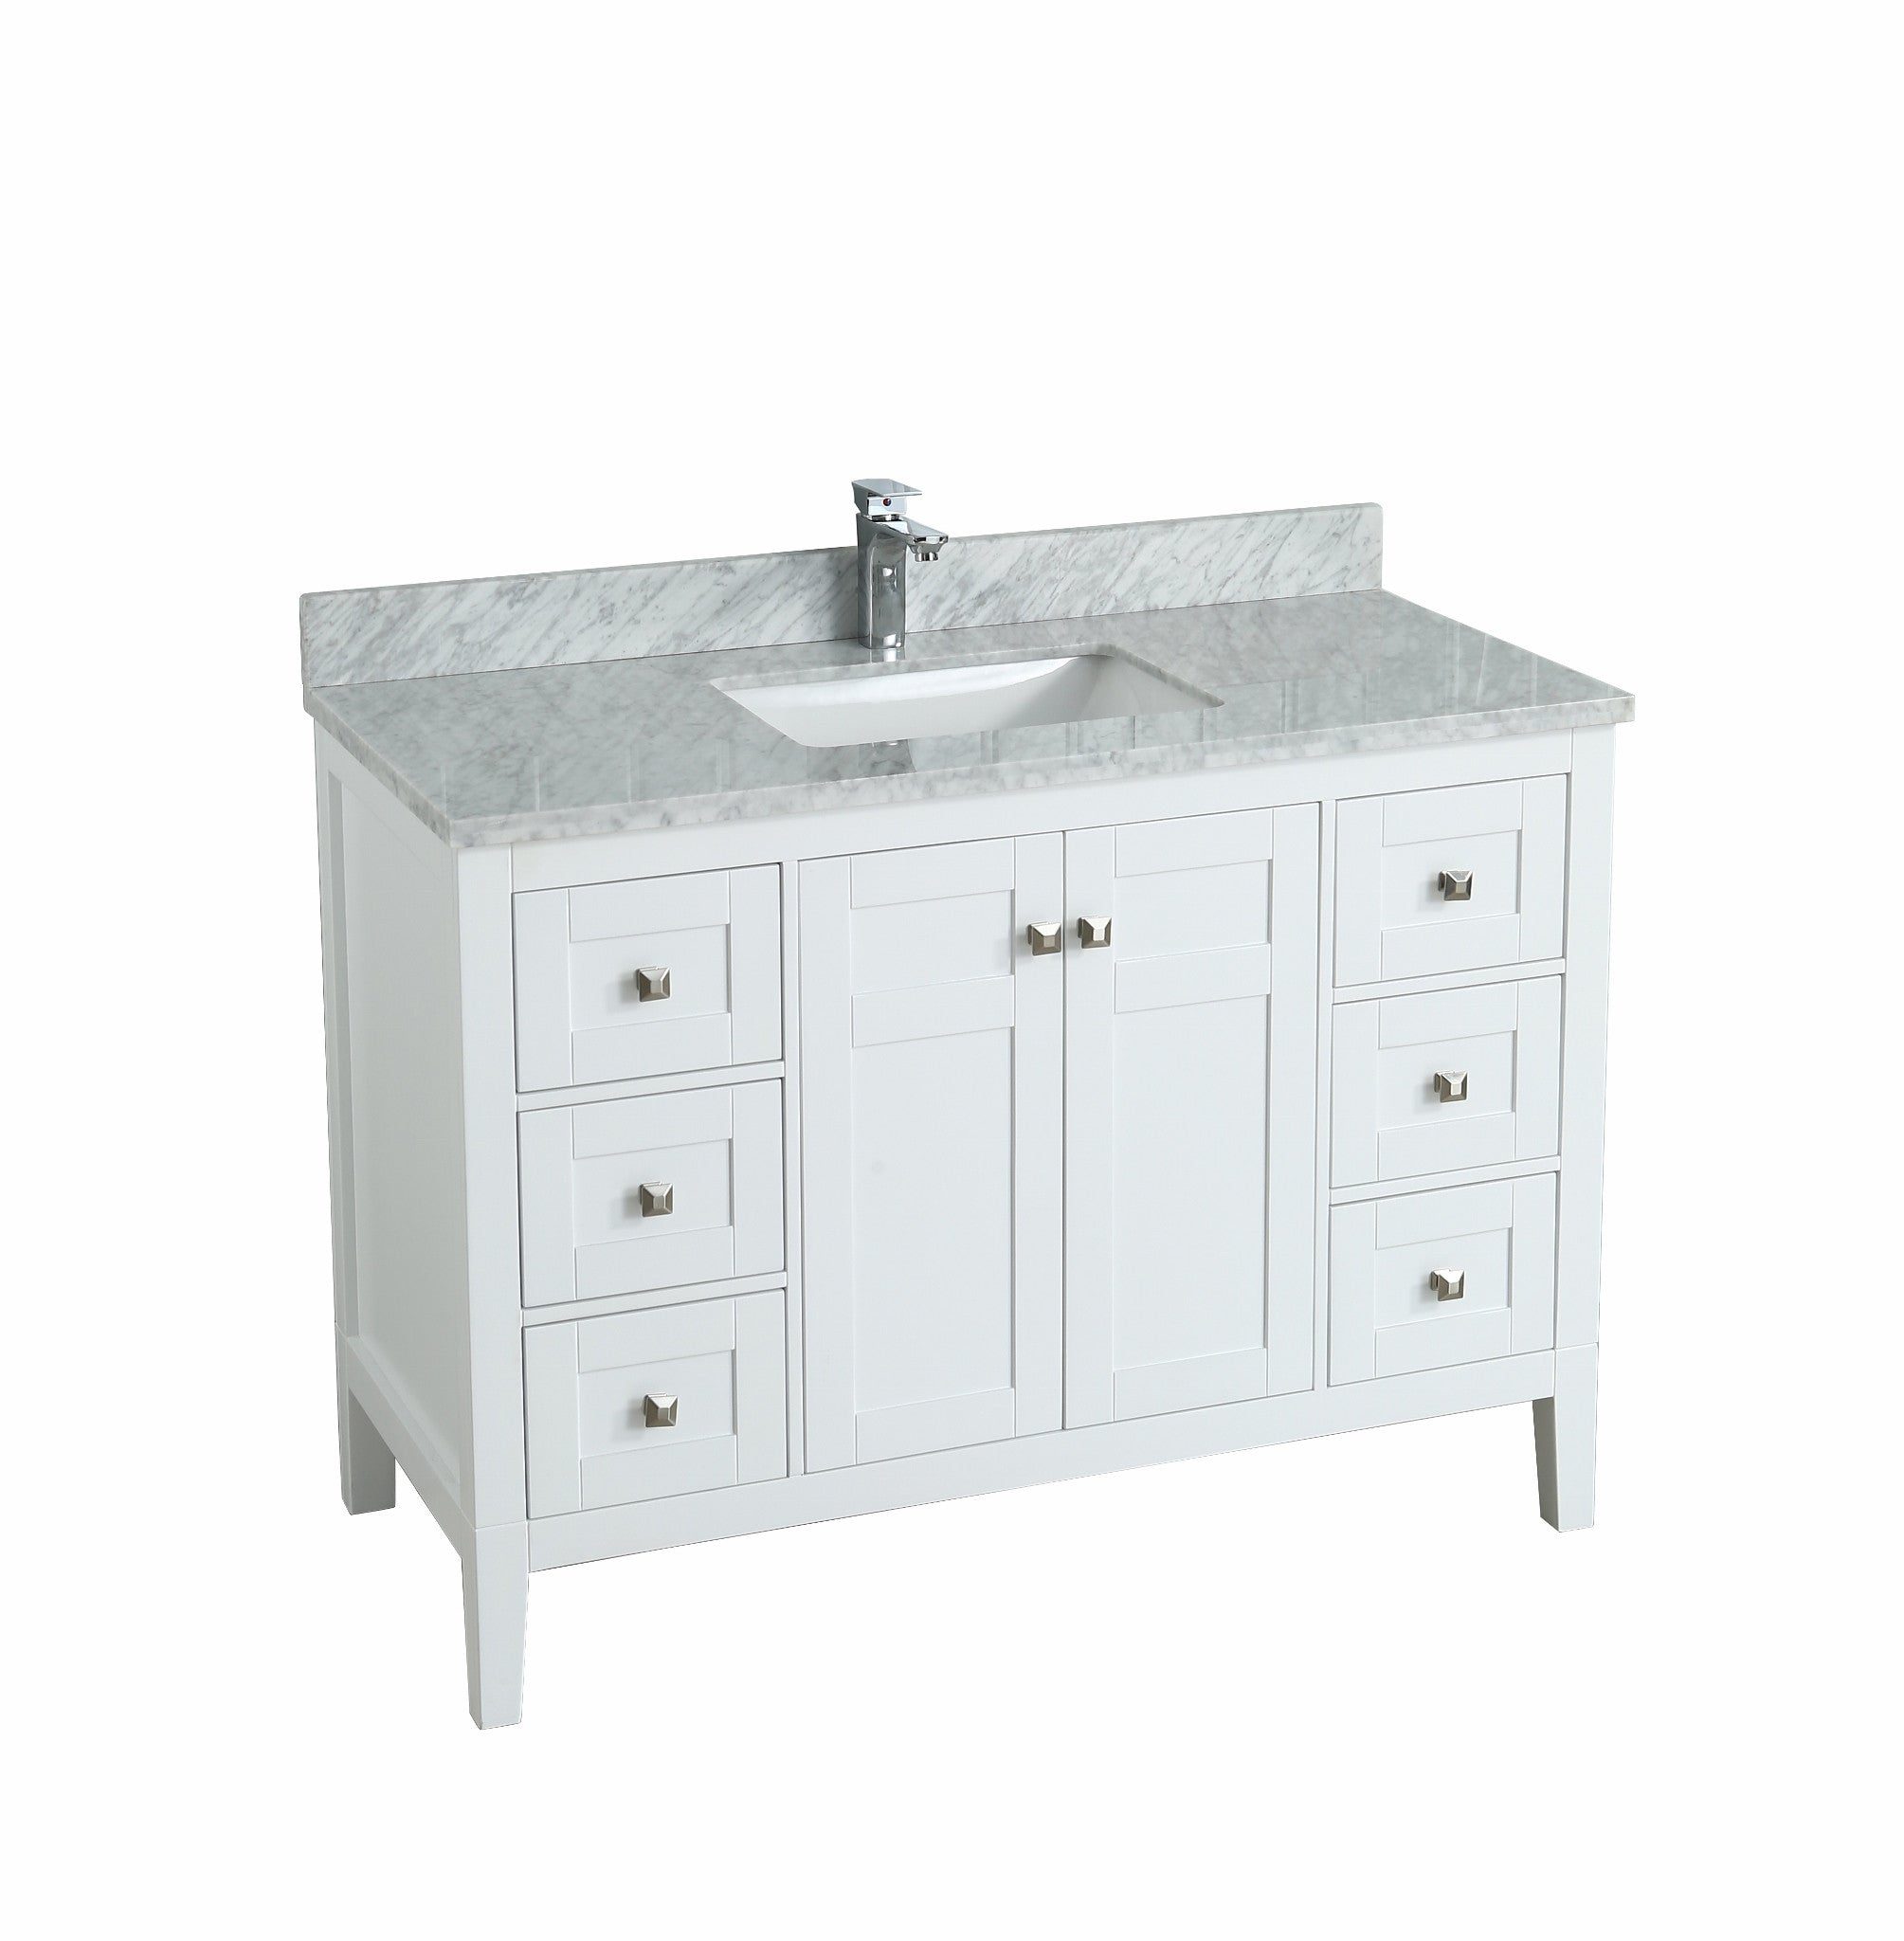 garden brown inch quartz wyndenhall marble vanity home oxford shipping free with white today espresso top bathroom overstock dark product